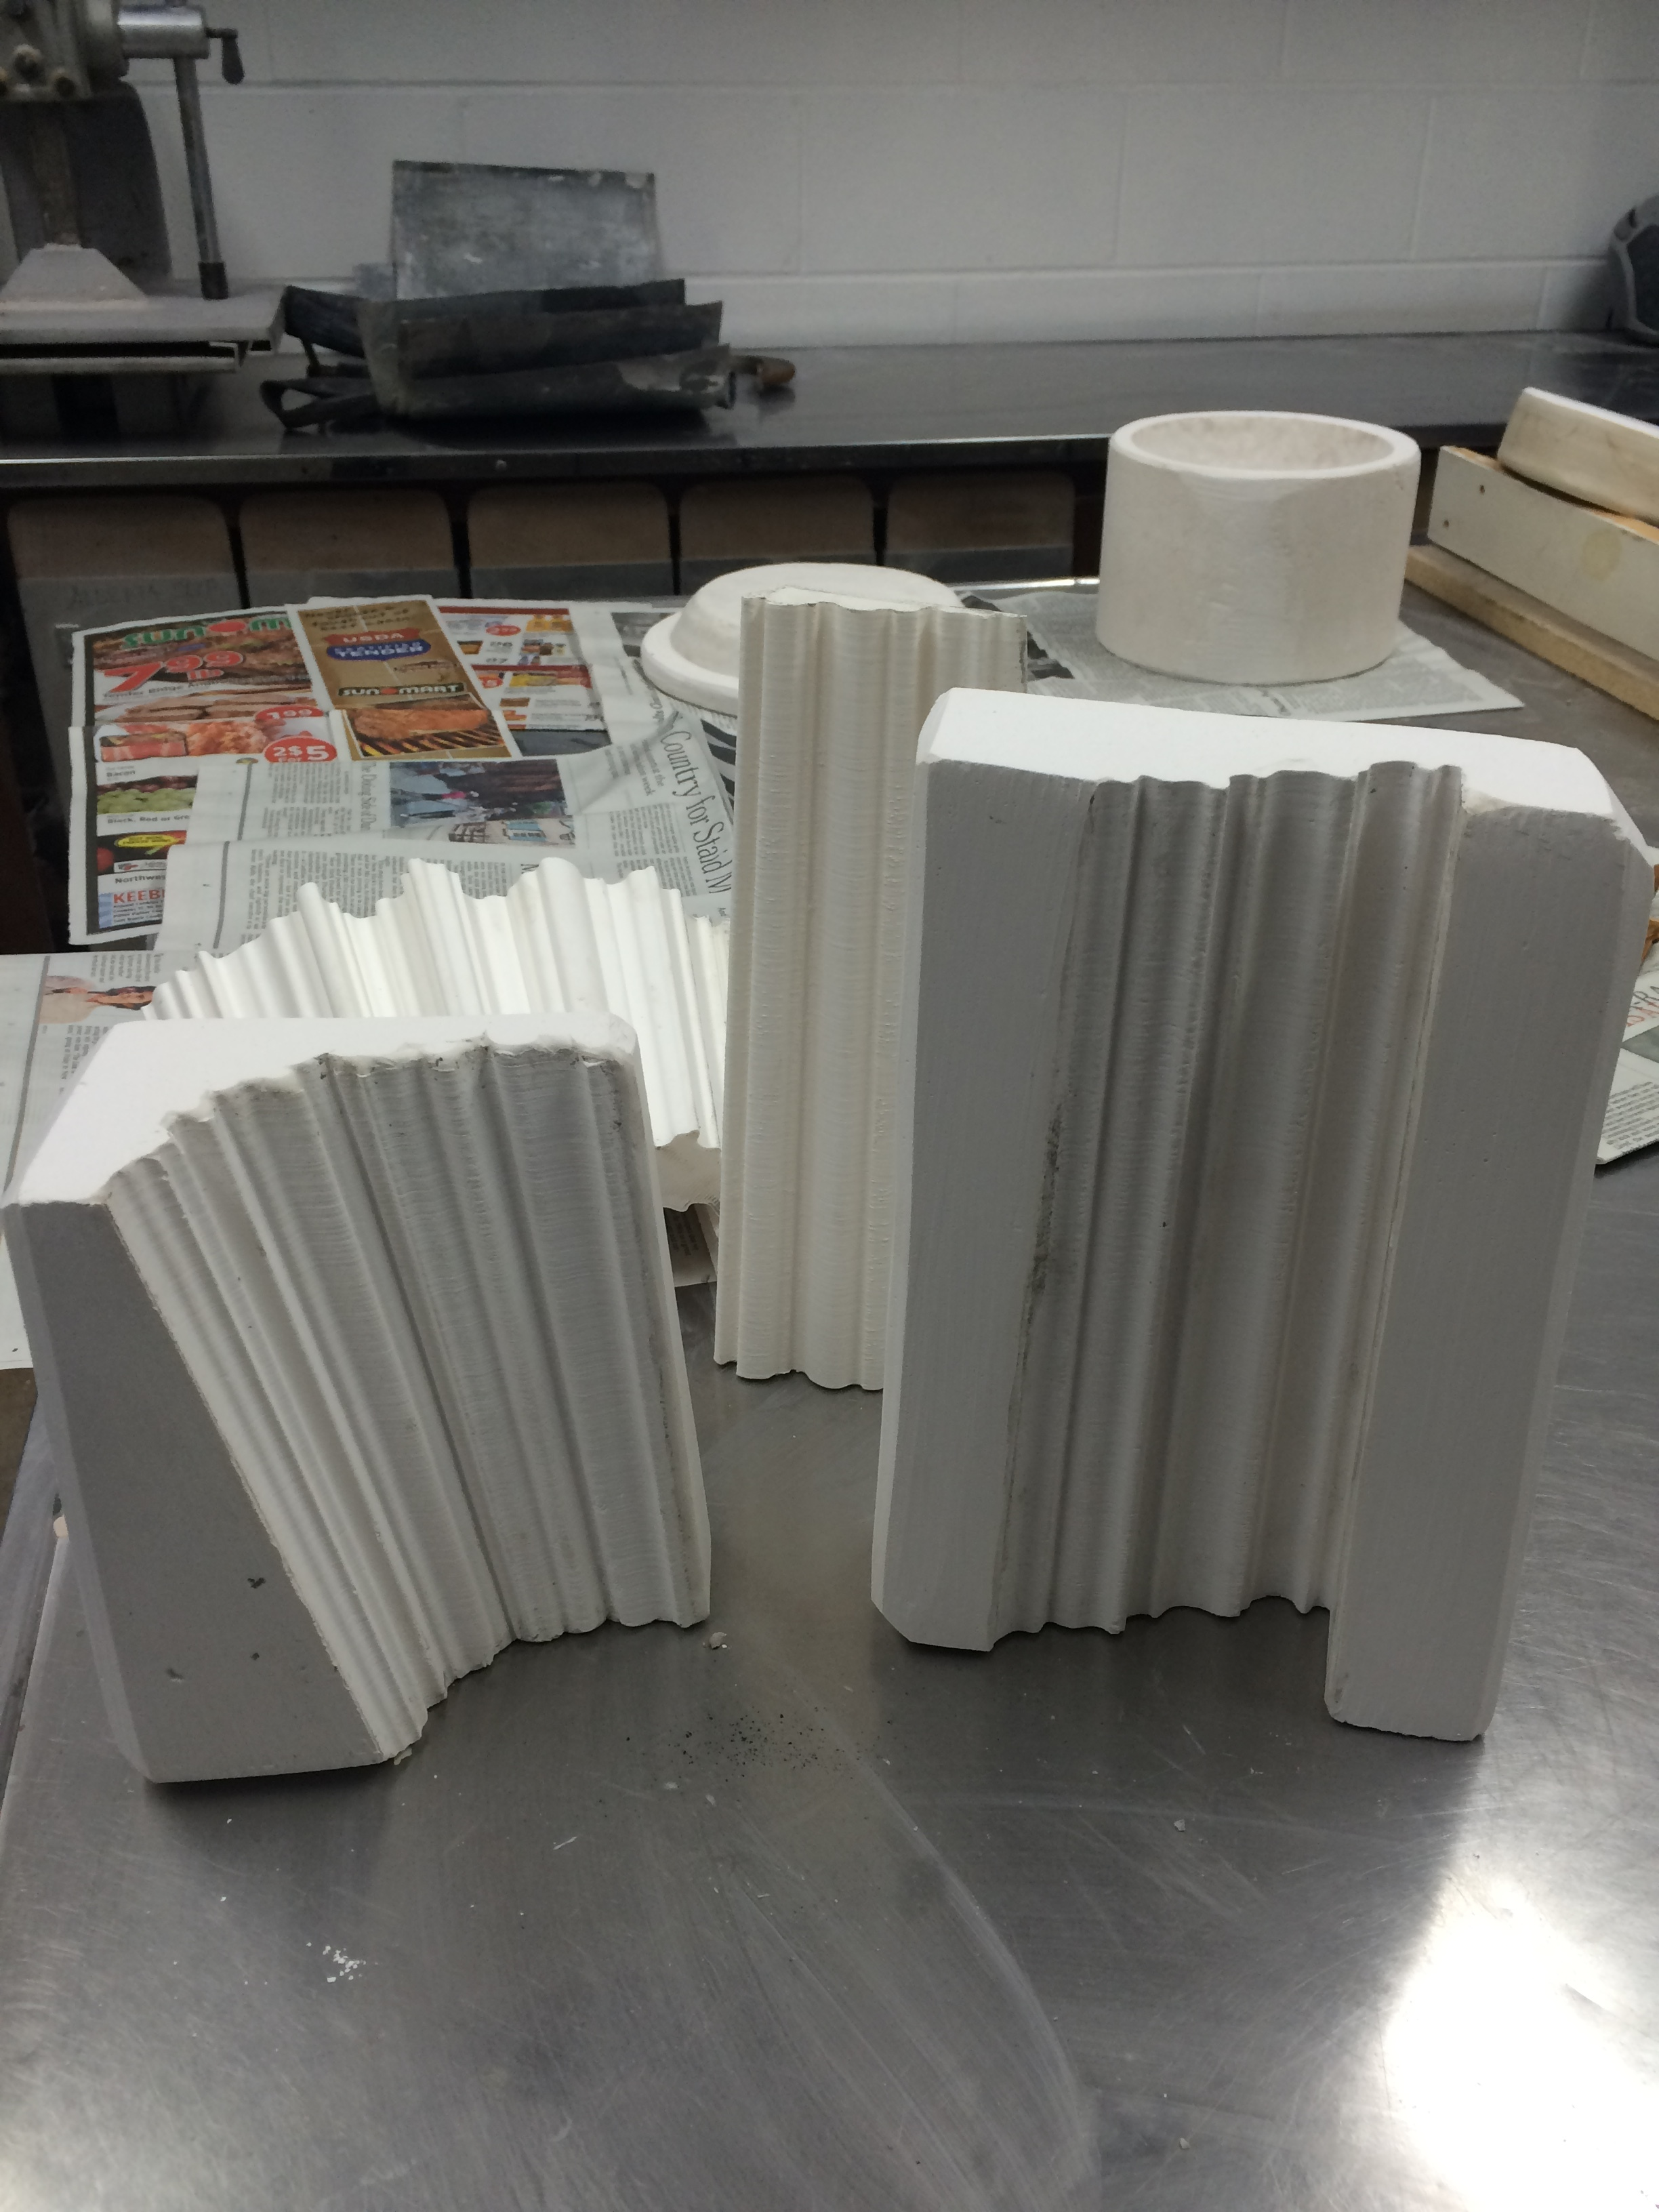 Plaster press-molds taken from 3D prints